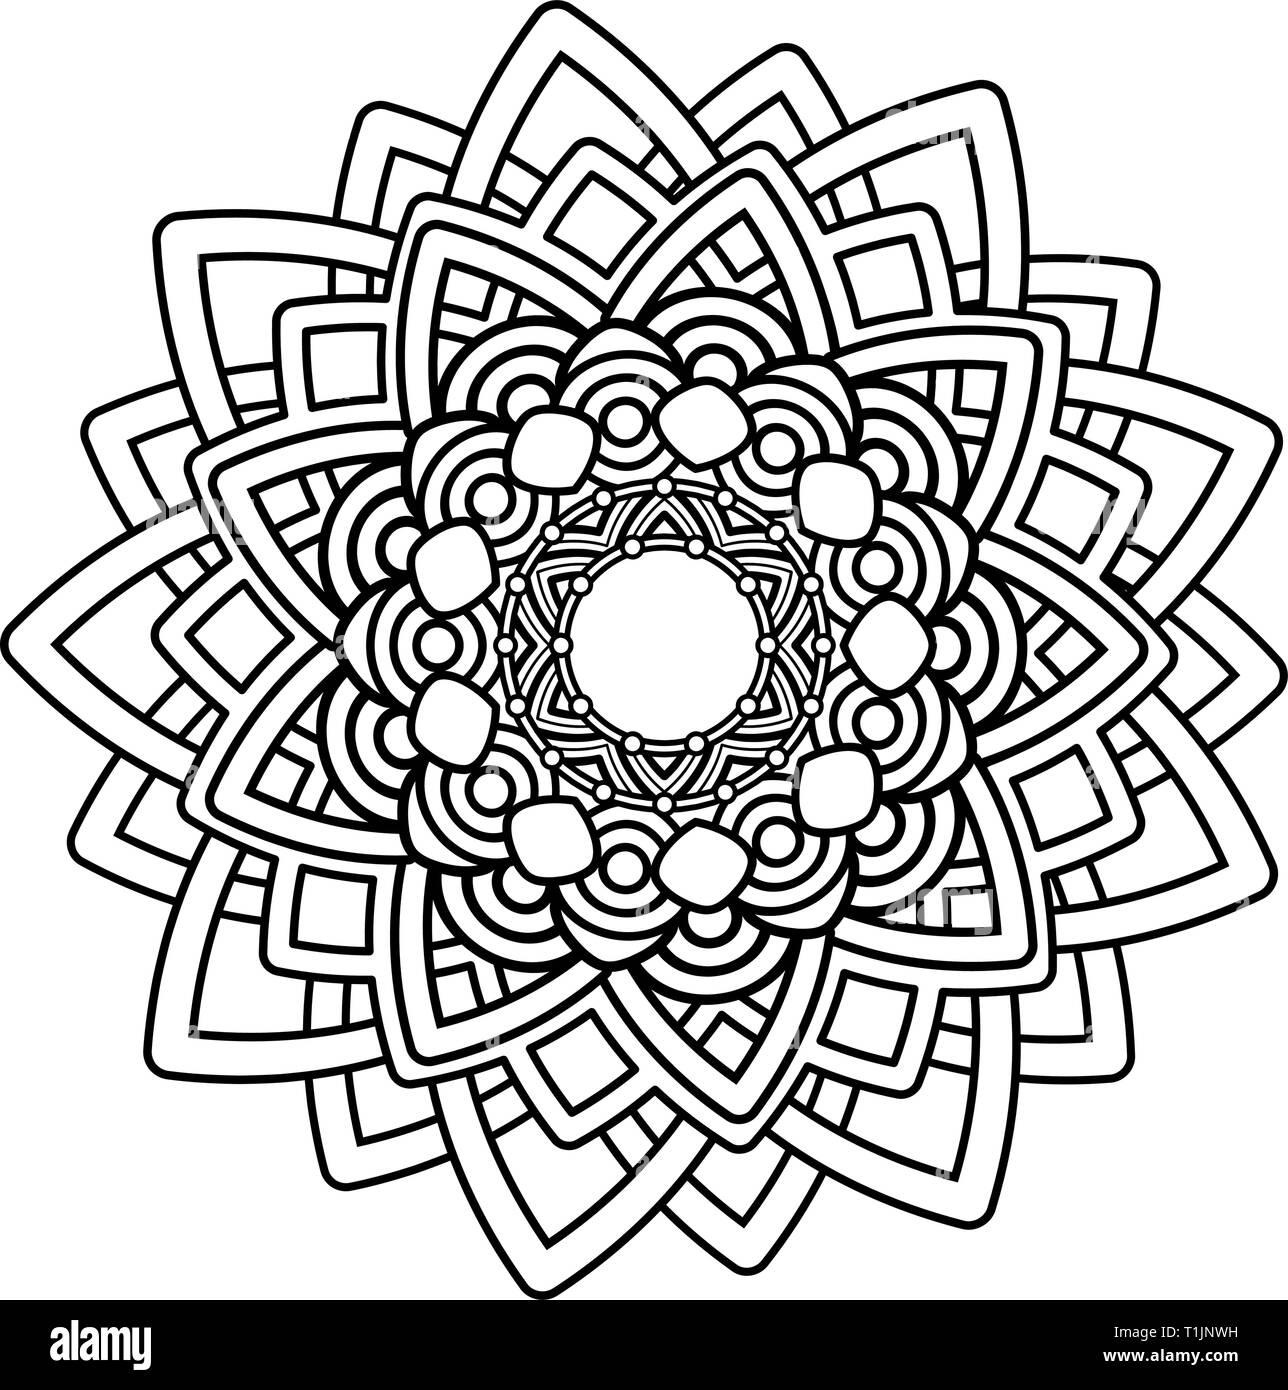 Mandala Coloring Pages Images, Stock Photos & Vectors | Shutterstock | 1390x1288